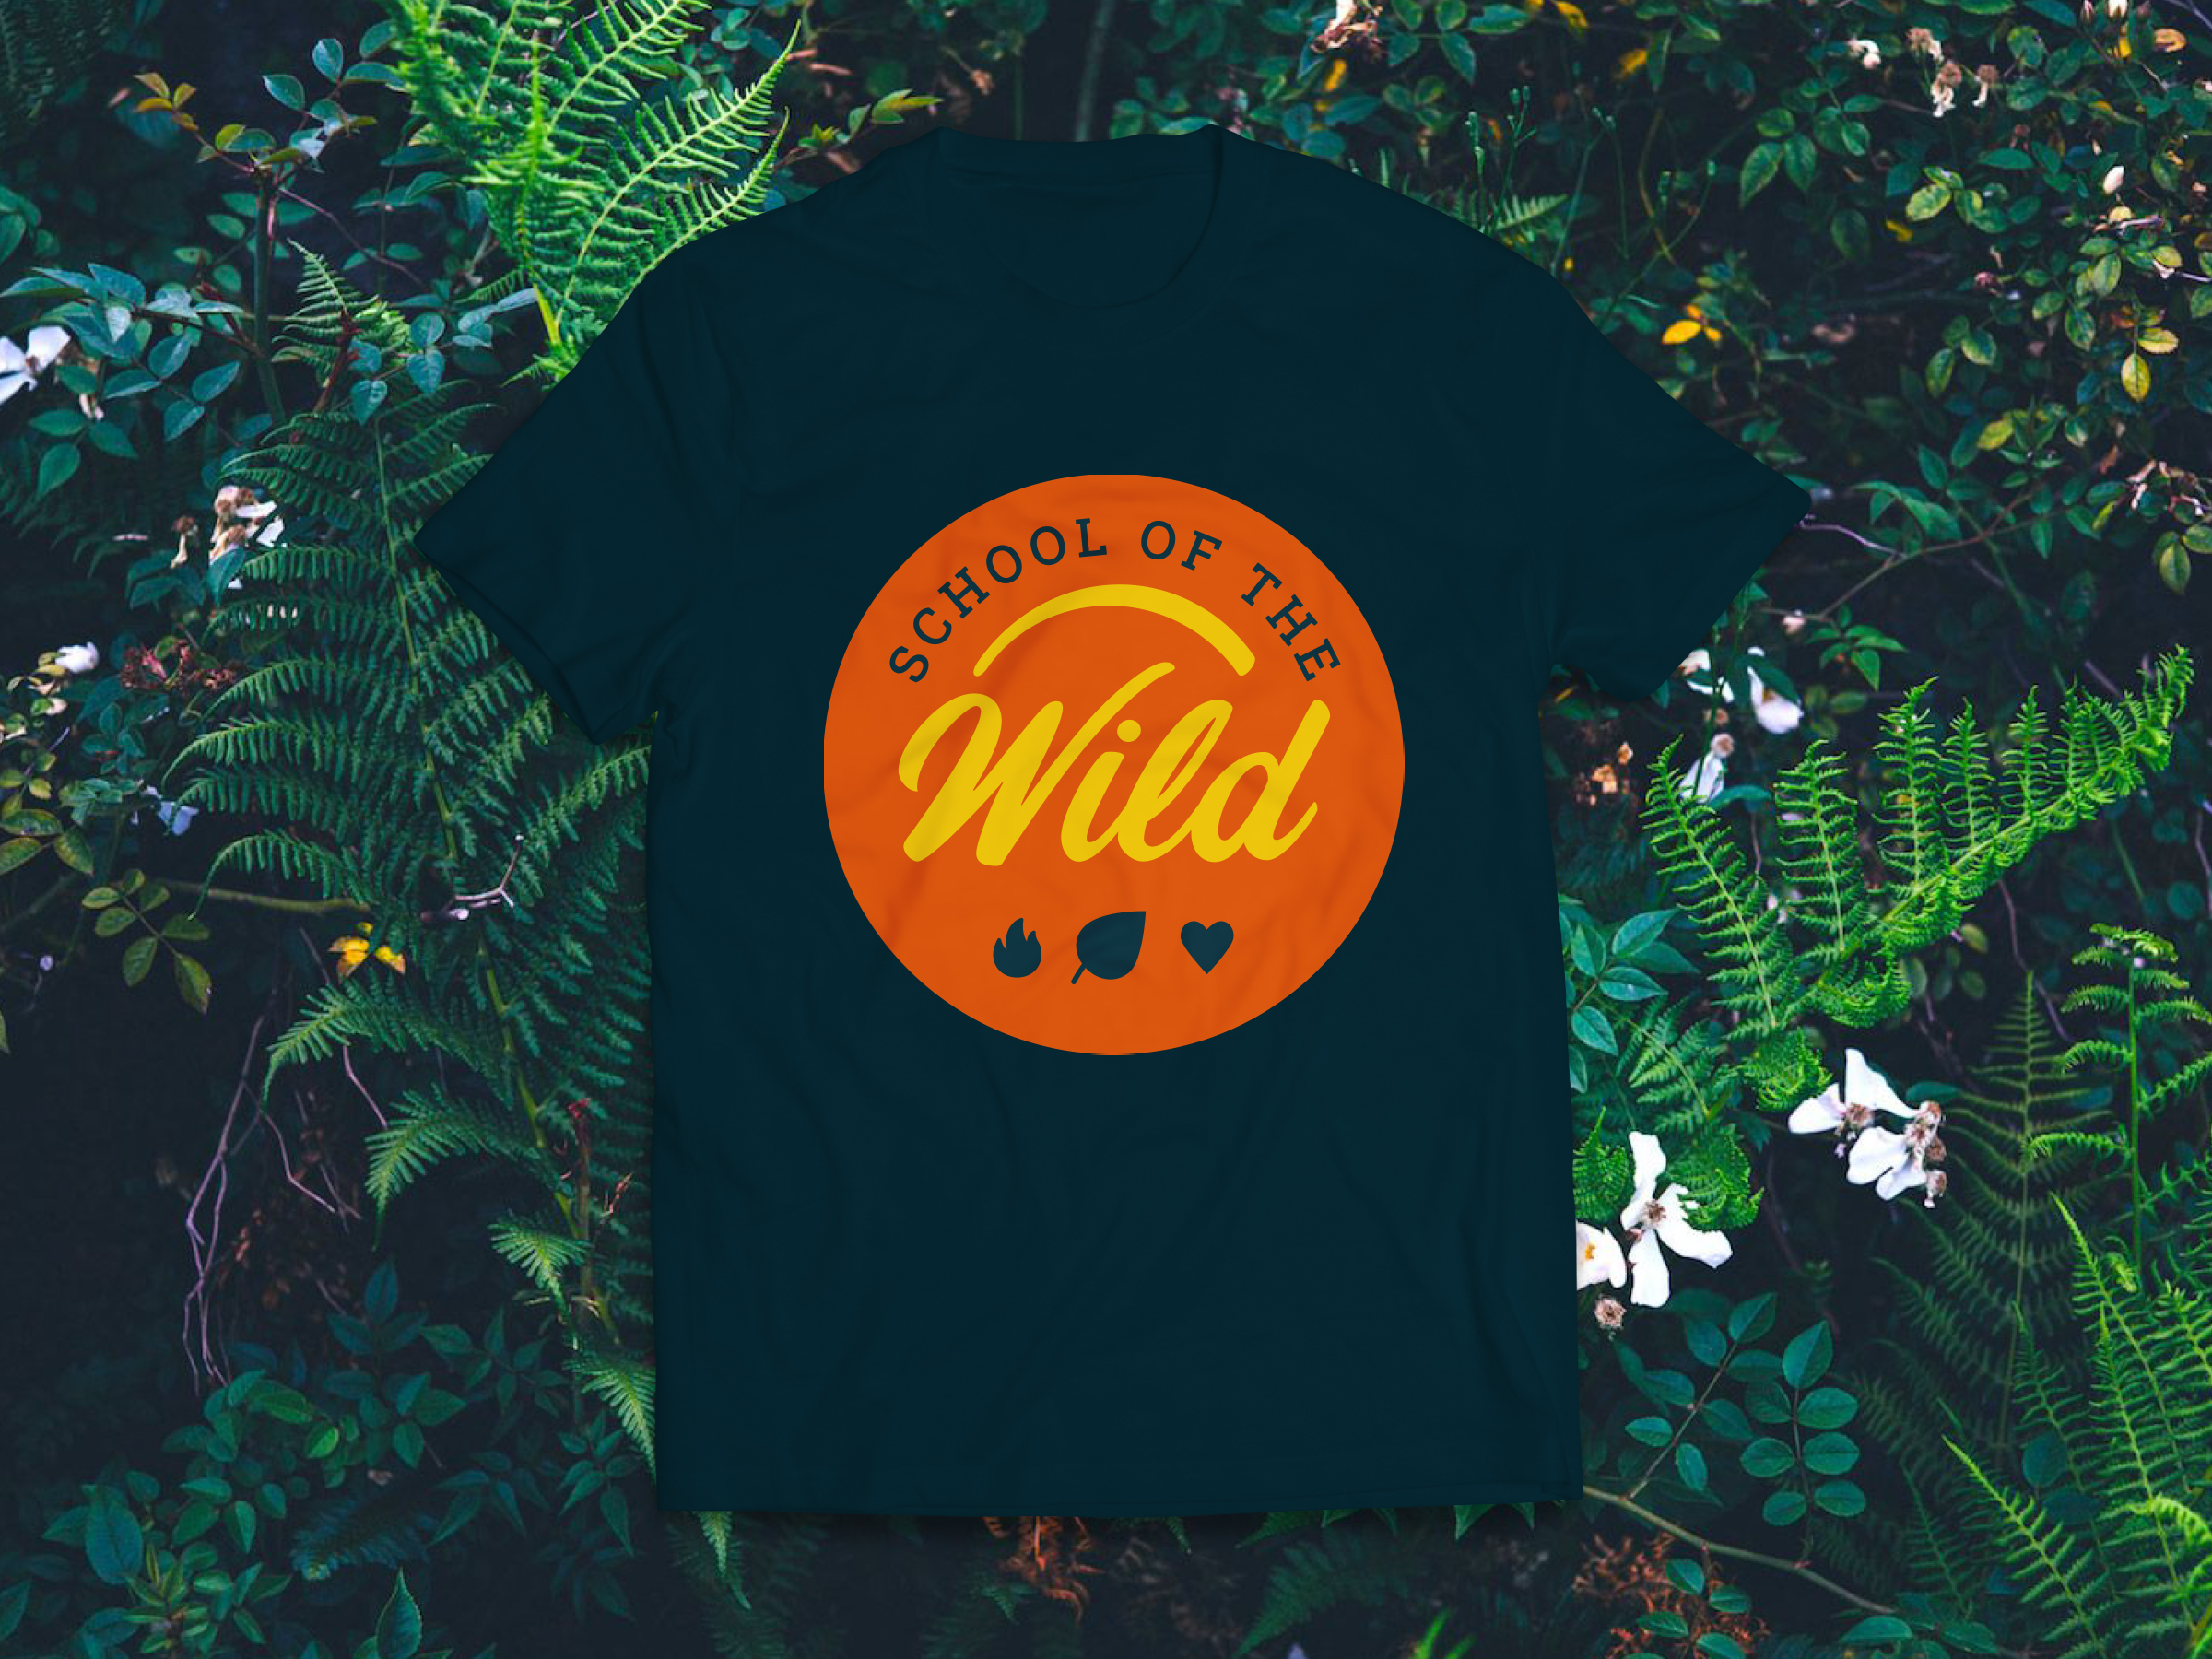 School of the Wild tshirt designs